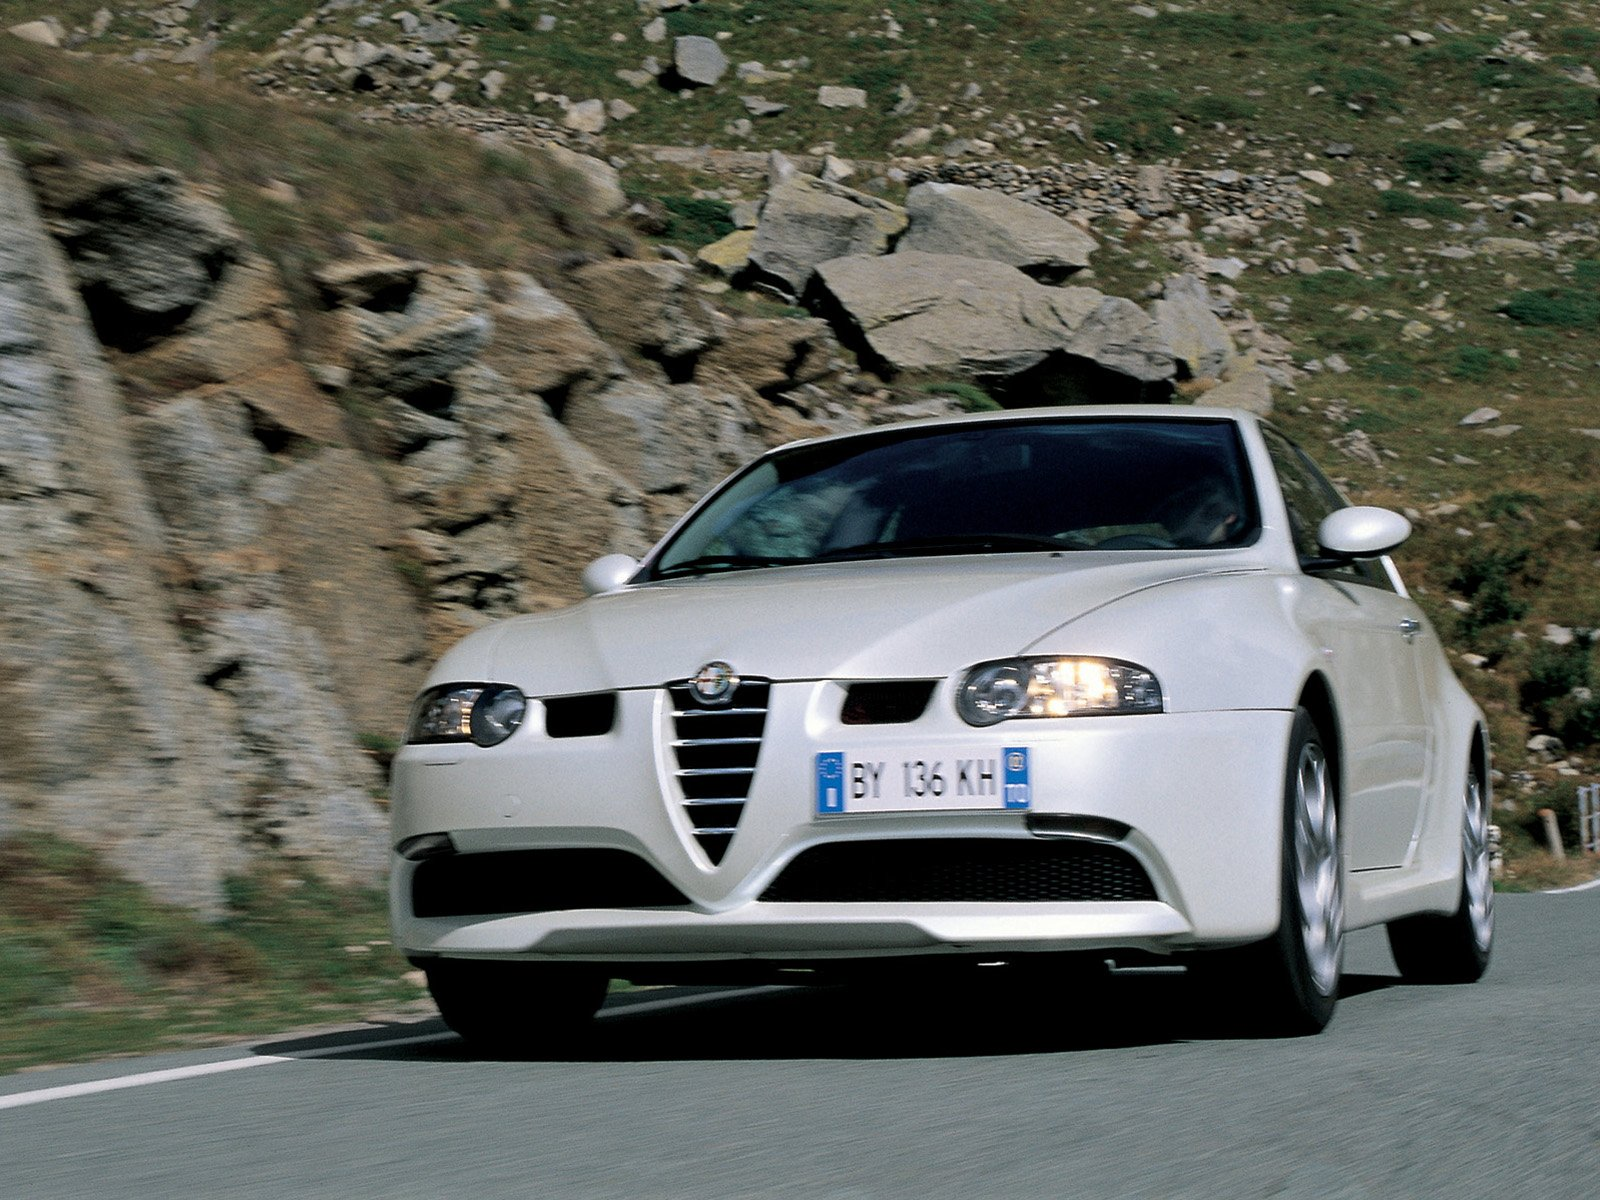 Alfa Romeo 147 Gta Picture 9136 Alfa Romeo Photo Gallery